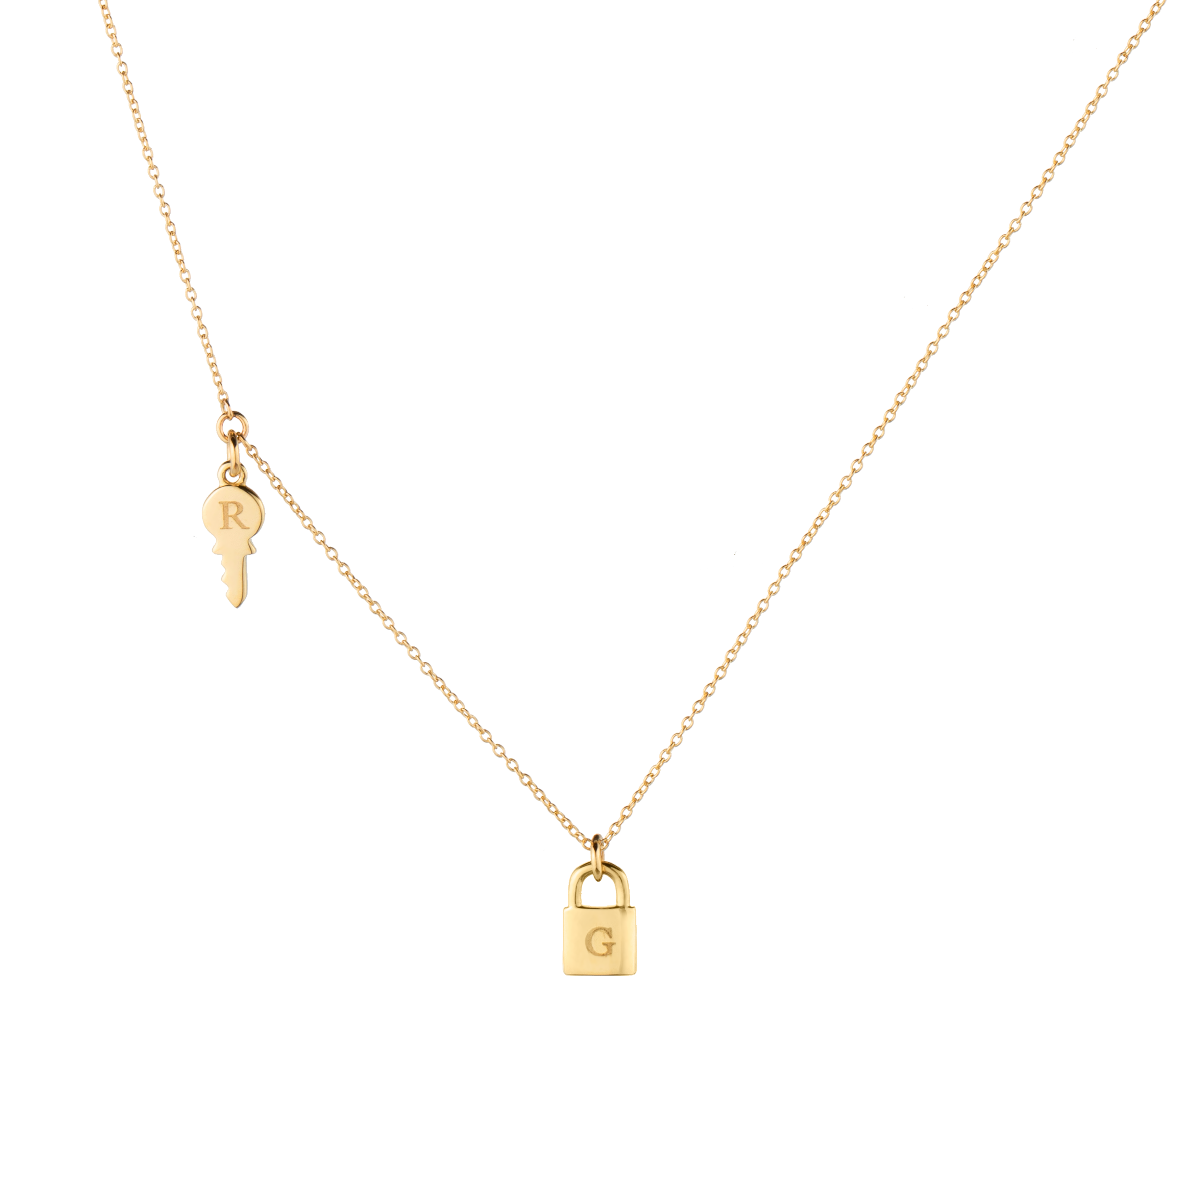 Kailey Key Letter Necklace